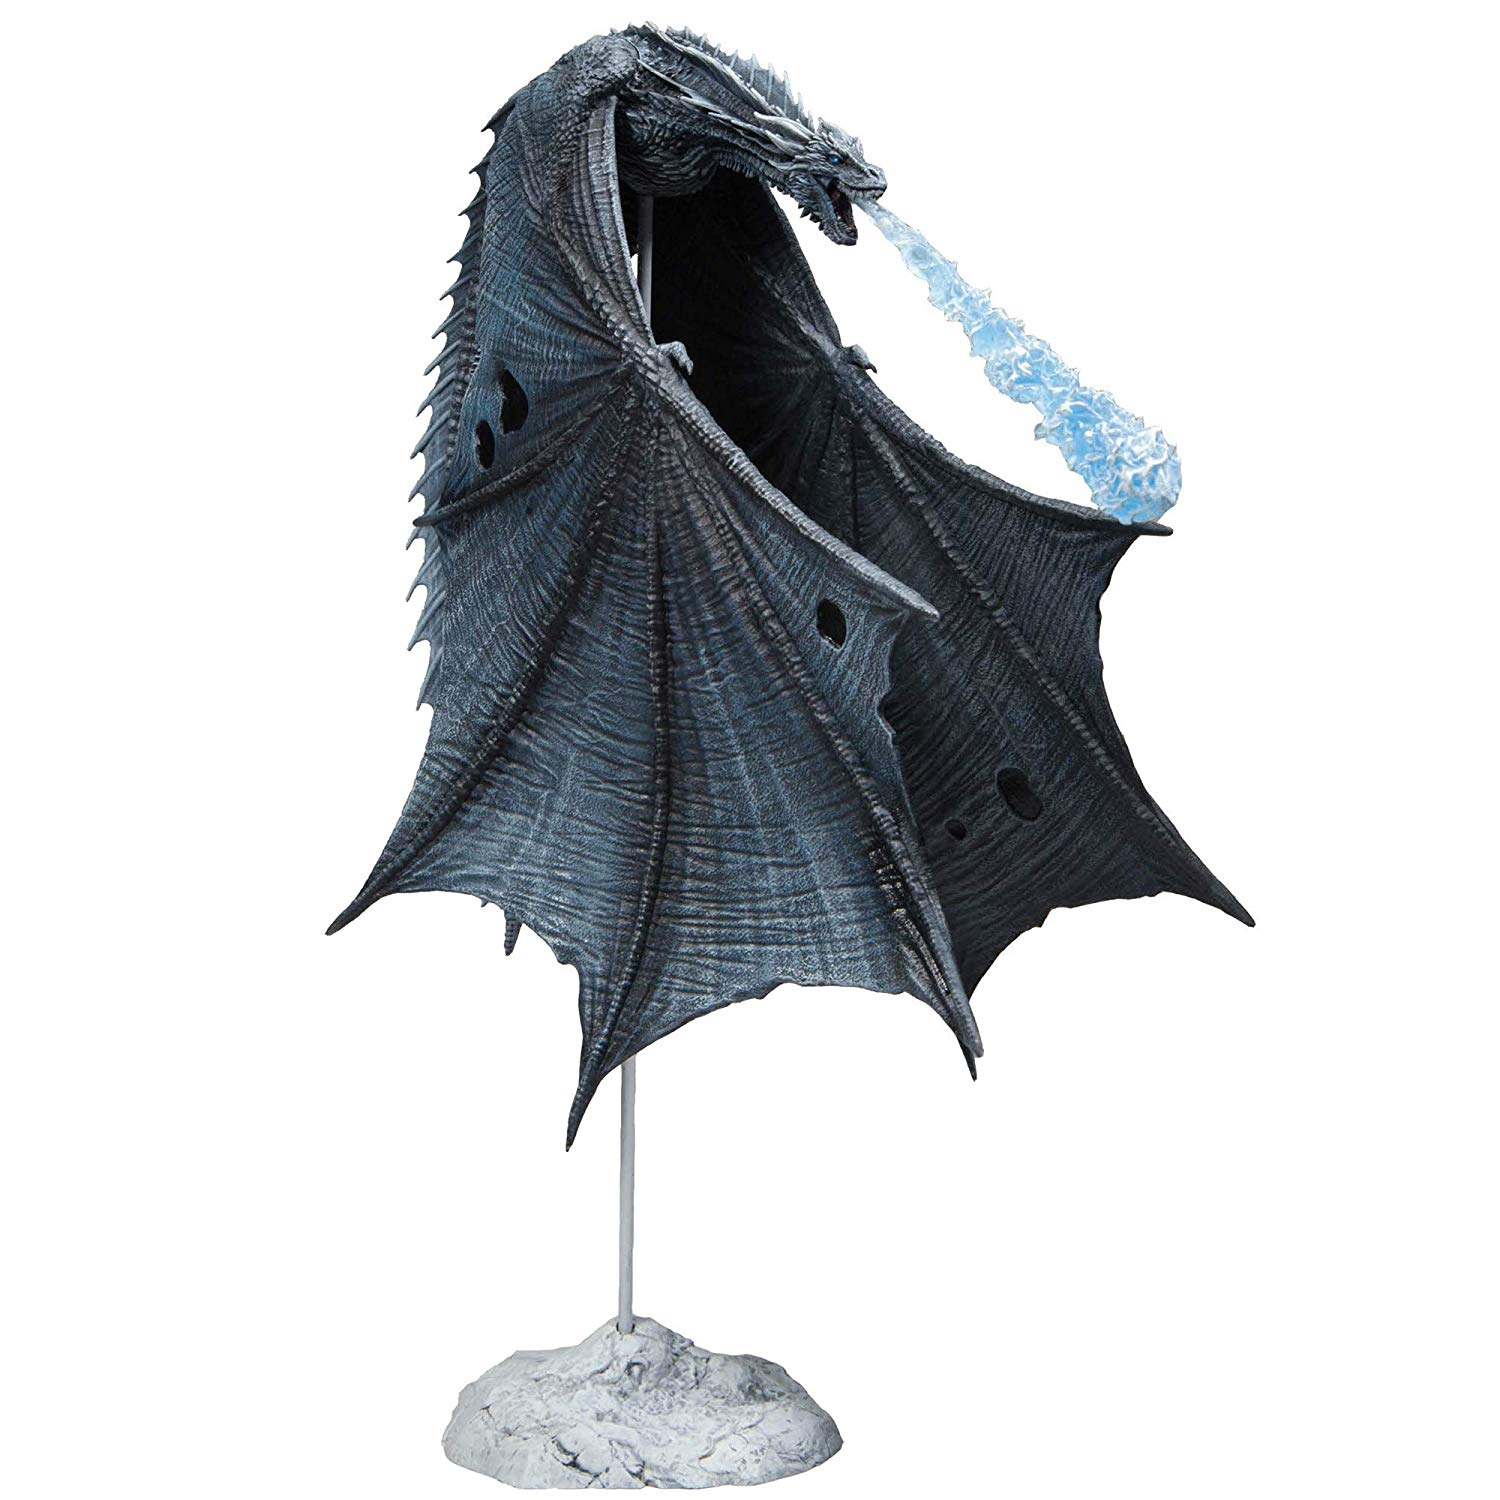 Game of Thrones Viserion Ice Dragon Deluxe Figure by McFarlane